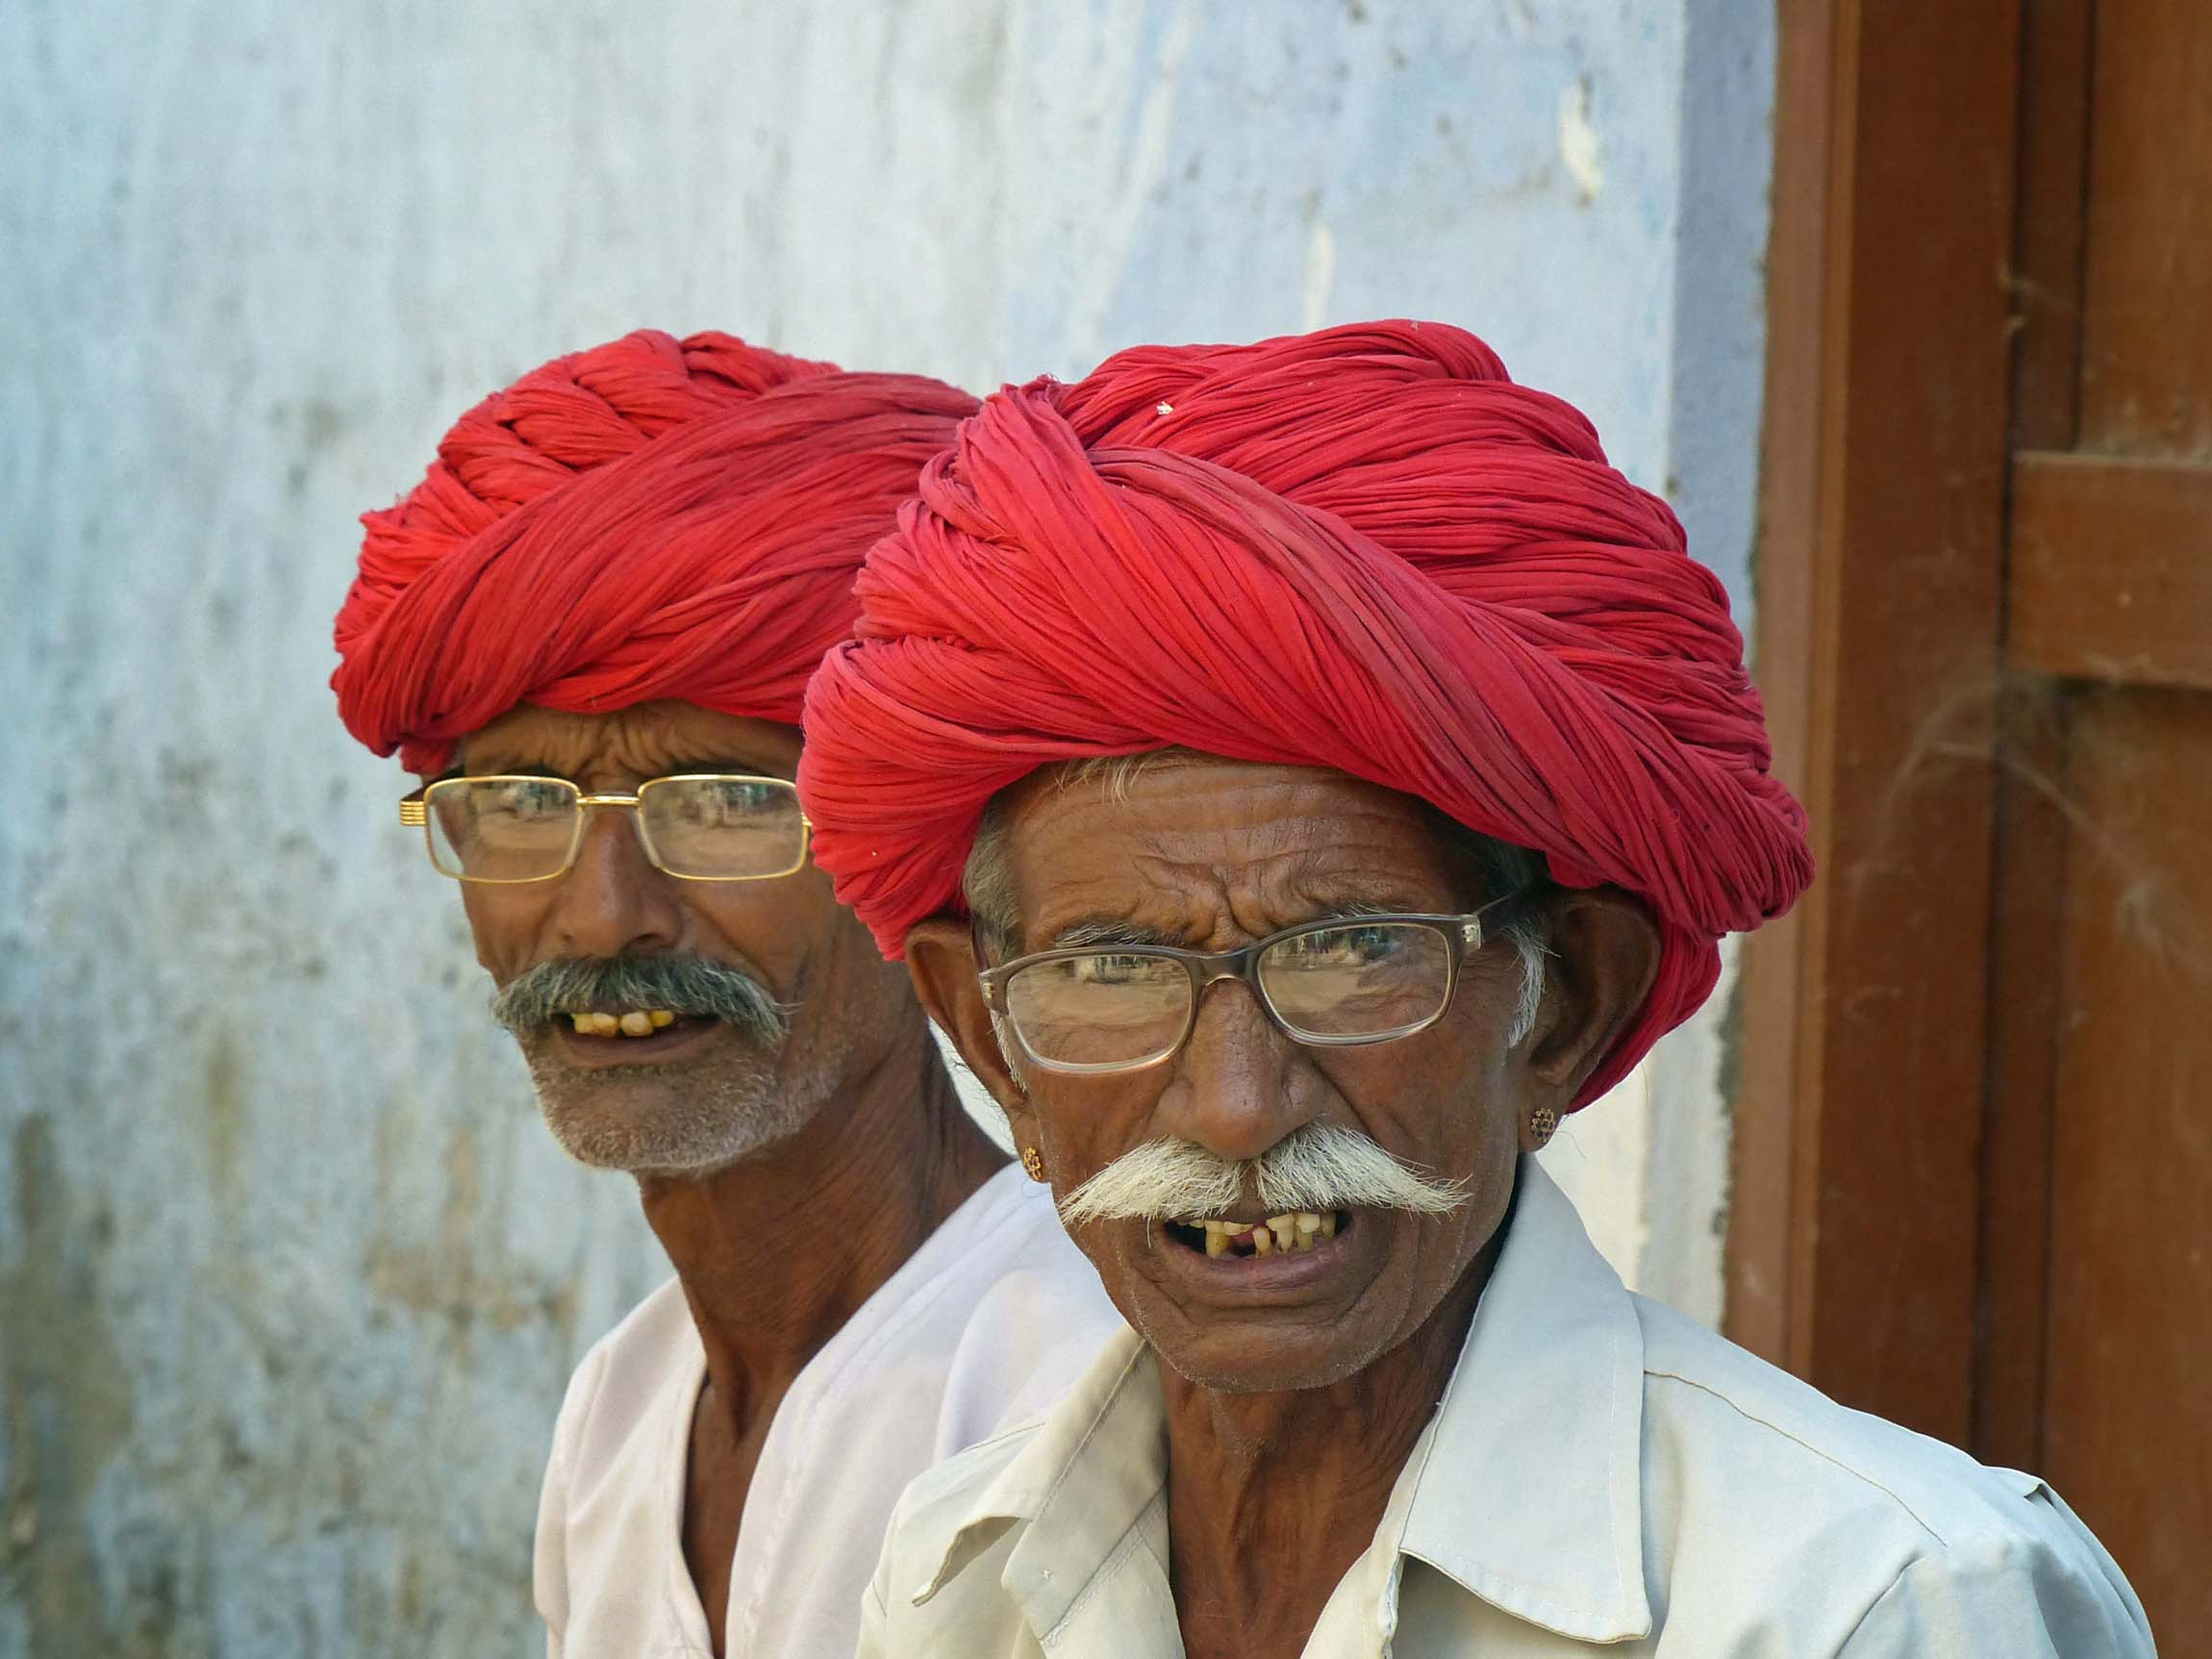 Two men in red turbans